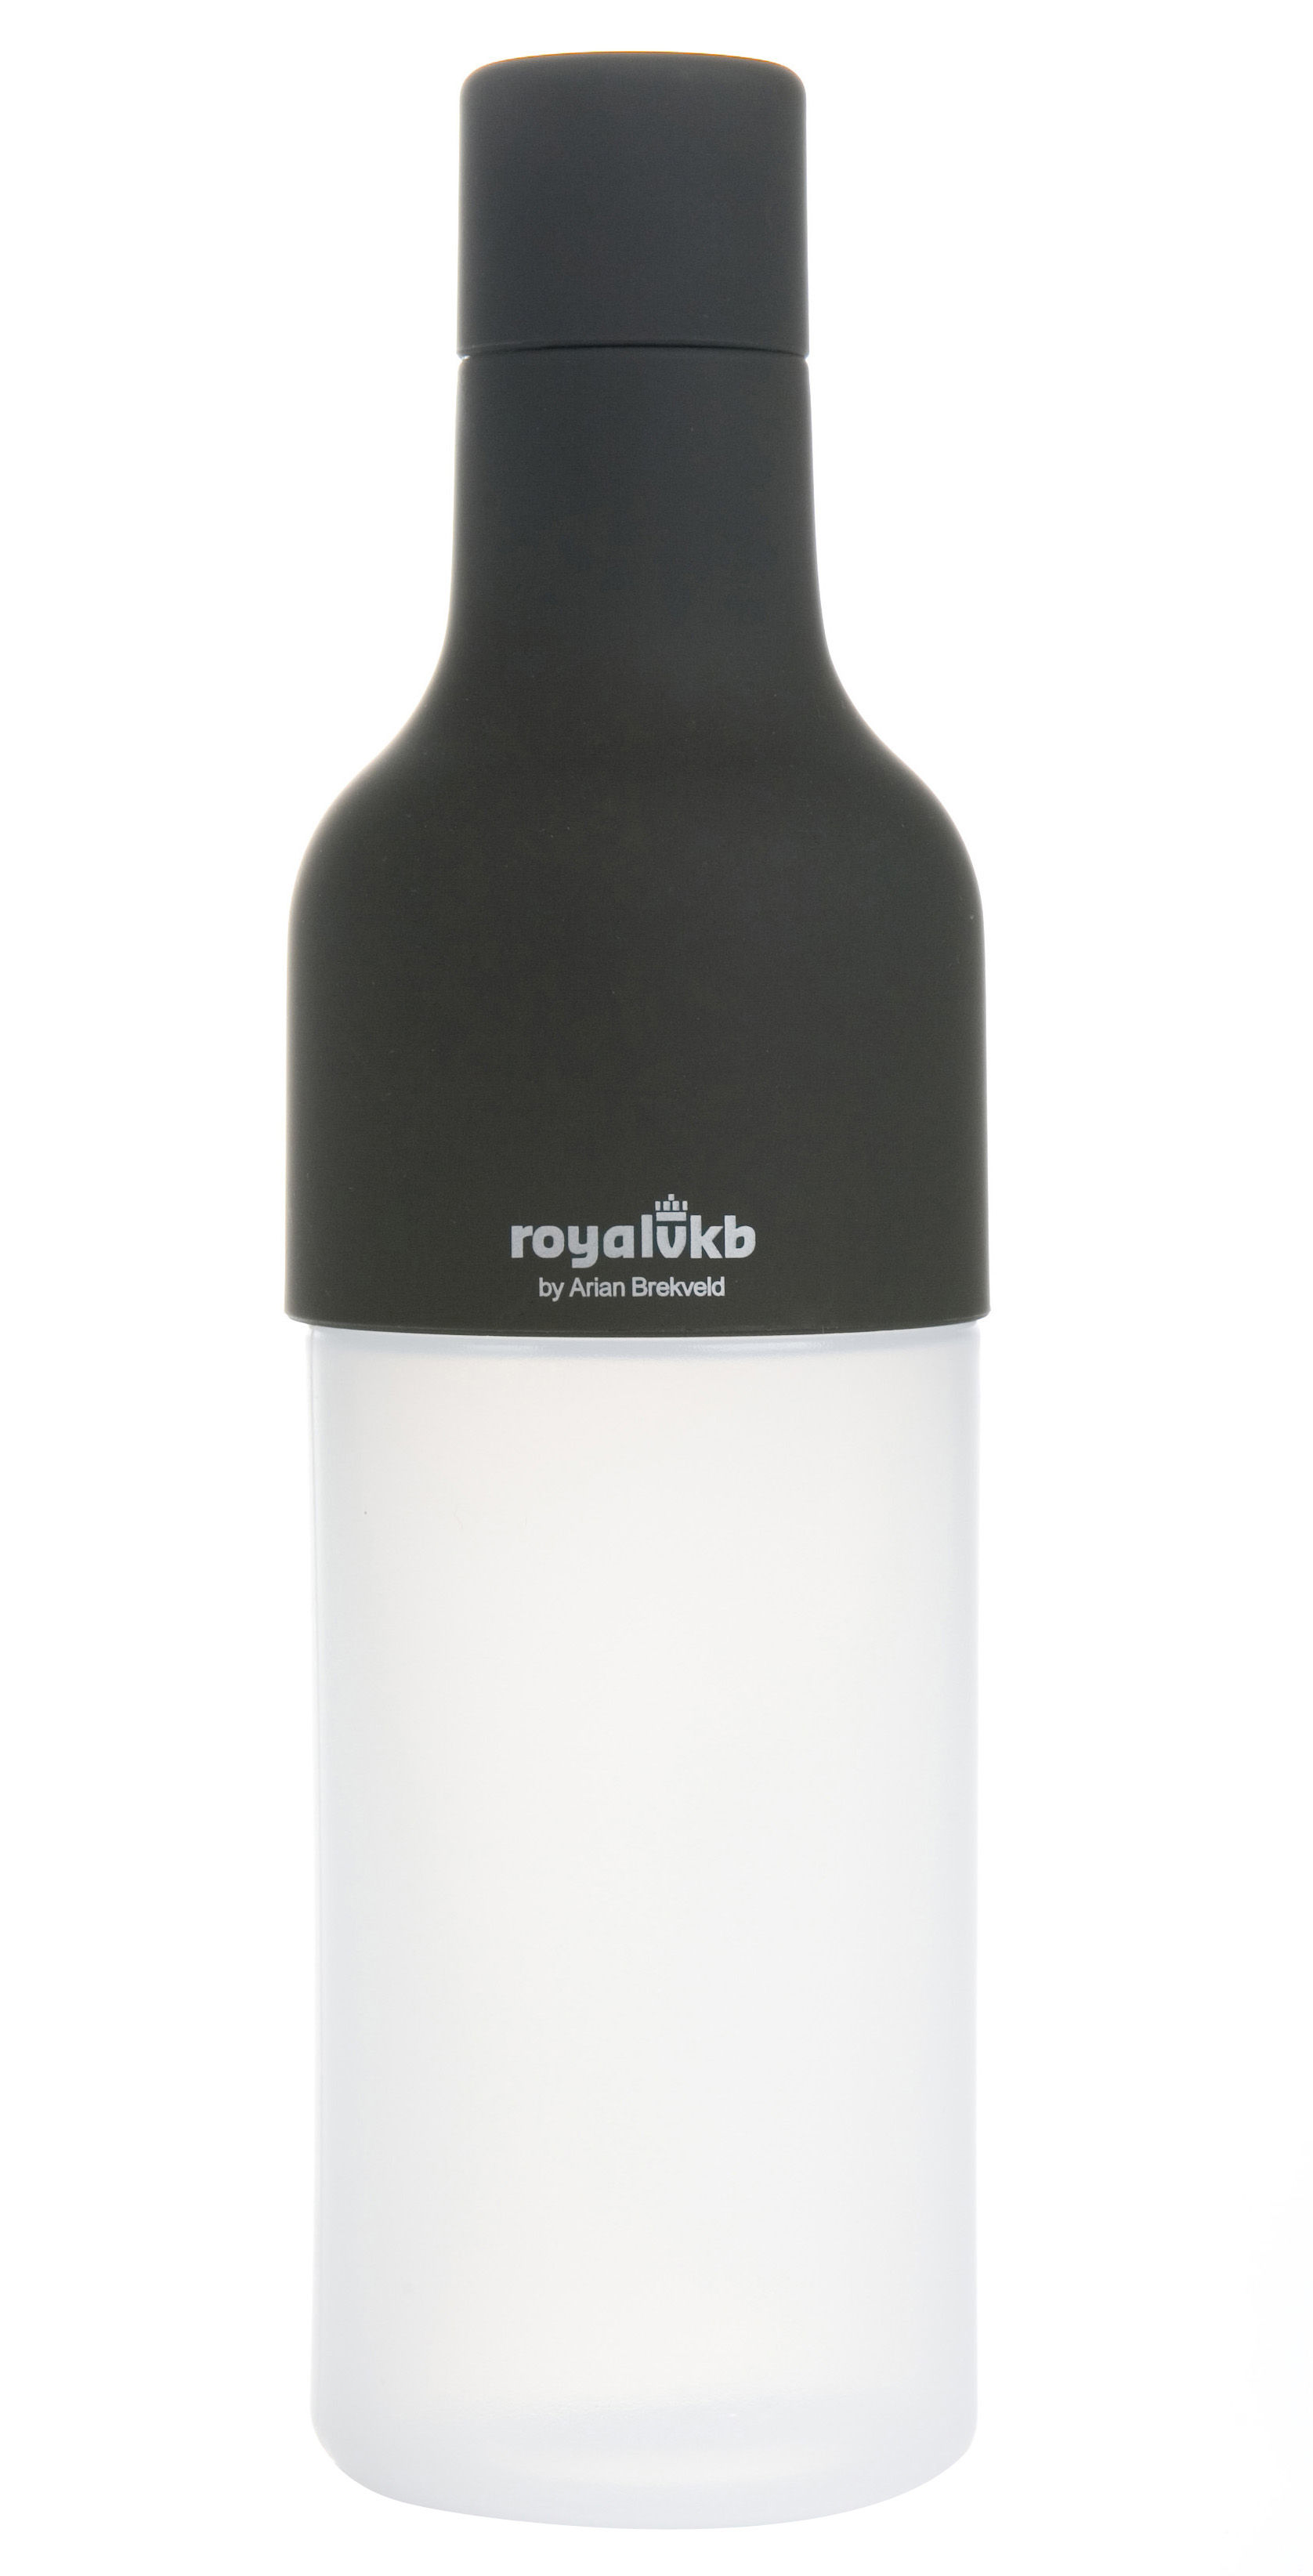 Kitchenware - Cool Kitchen Gadgets - Squeeze Vinegar shaker by Royal VKB - Anthracite - Polypropylene